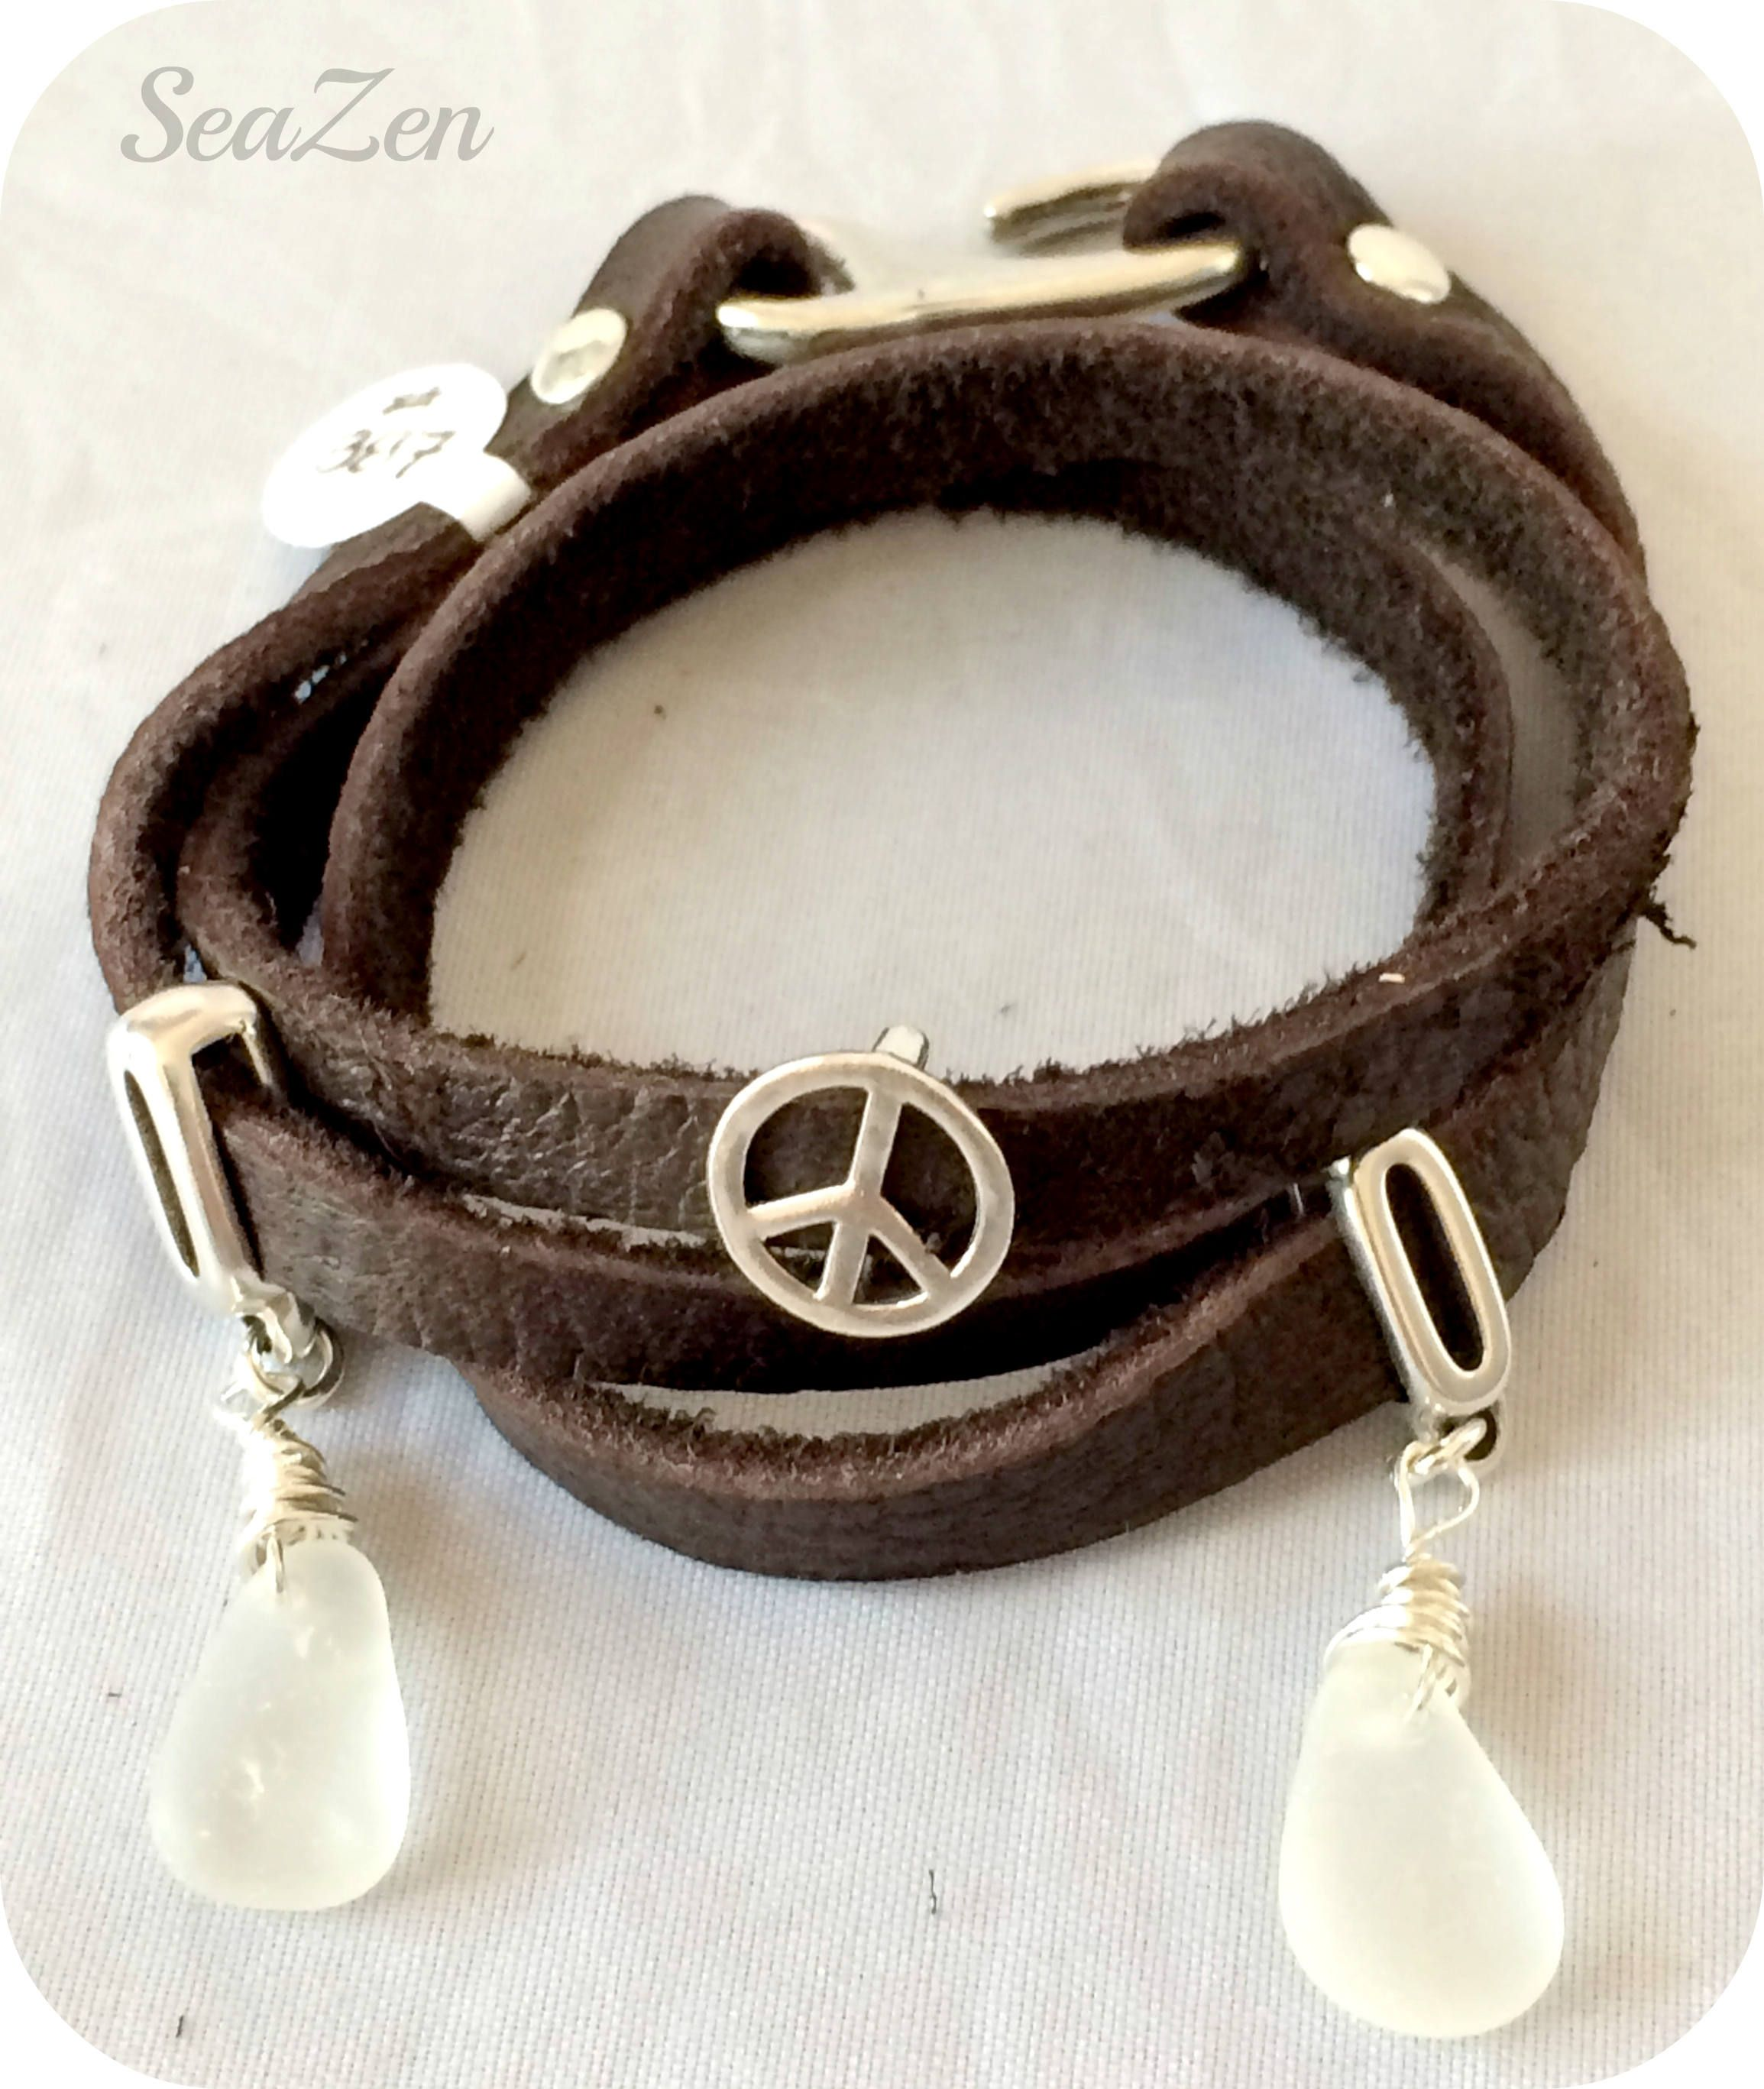 hipstamaticphoto peace bracelet jewellery product design janine binneman sign